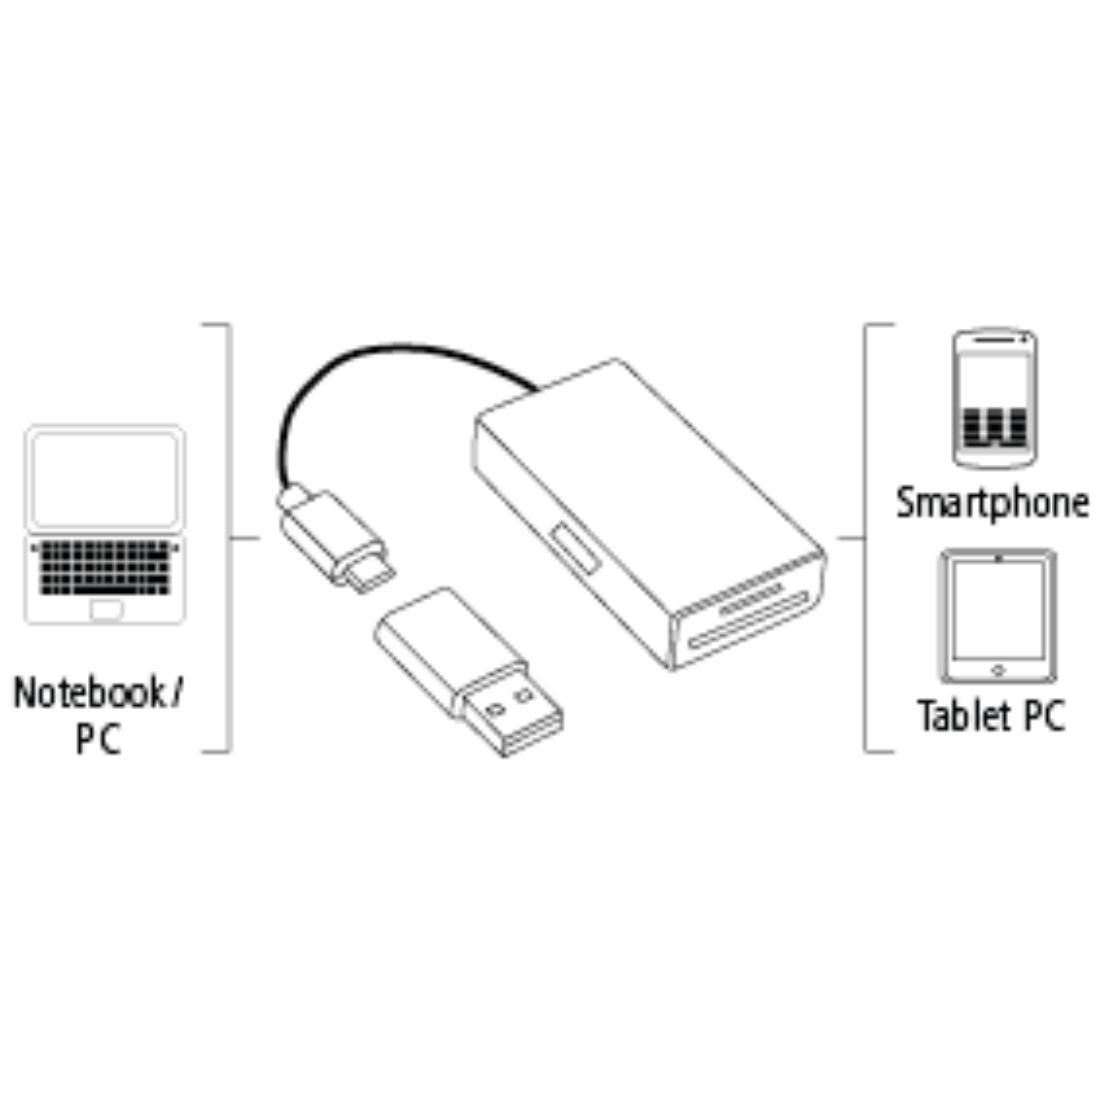 Четец за карти HAMA 54141,OTG hub USB 2.0, for Smartphone/Tablet/Notebook/PC